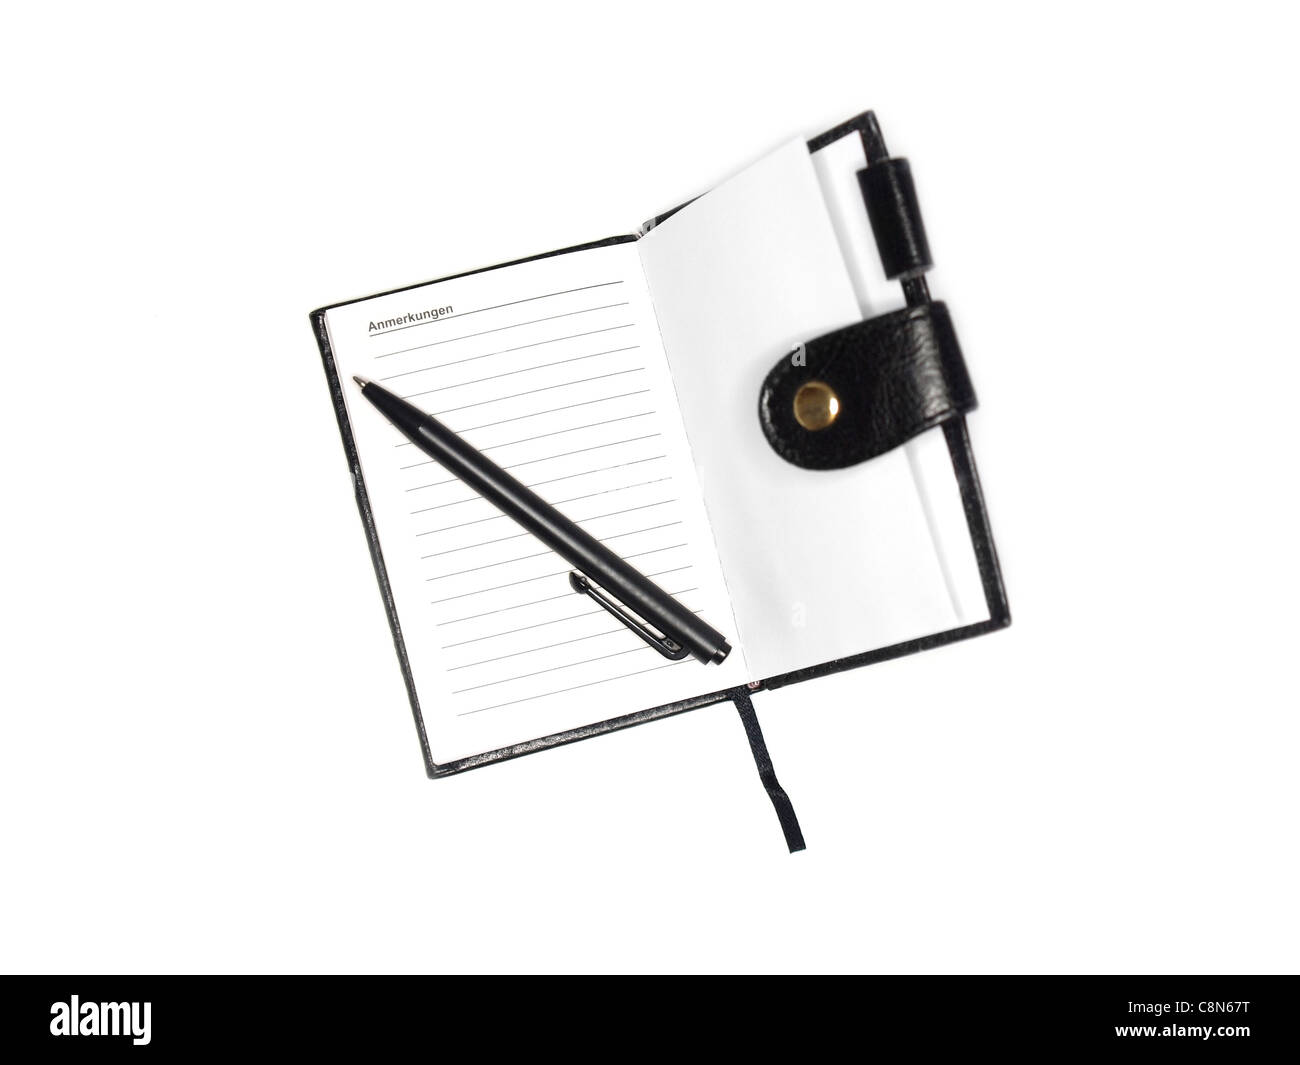 old-fashioned note book with pen, isolated on white - Stock Image